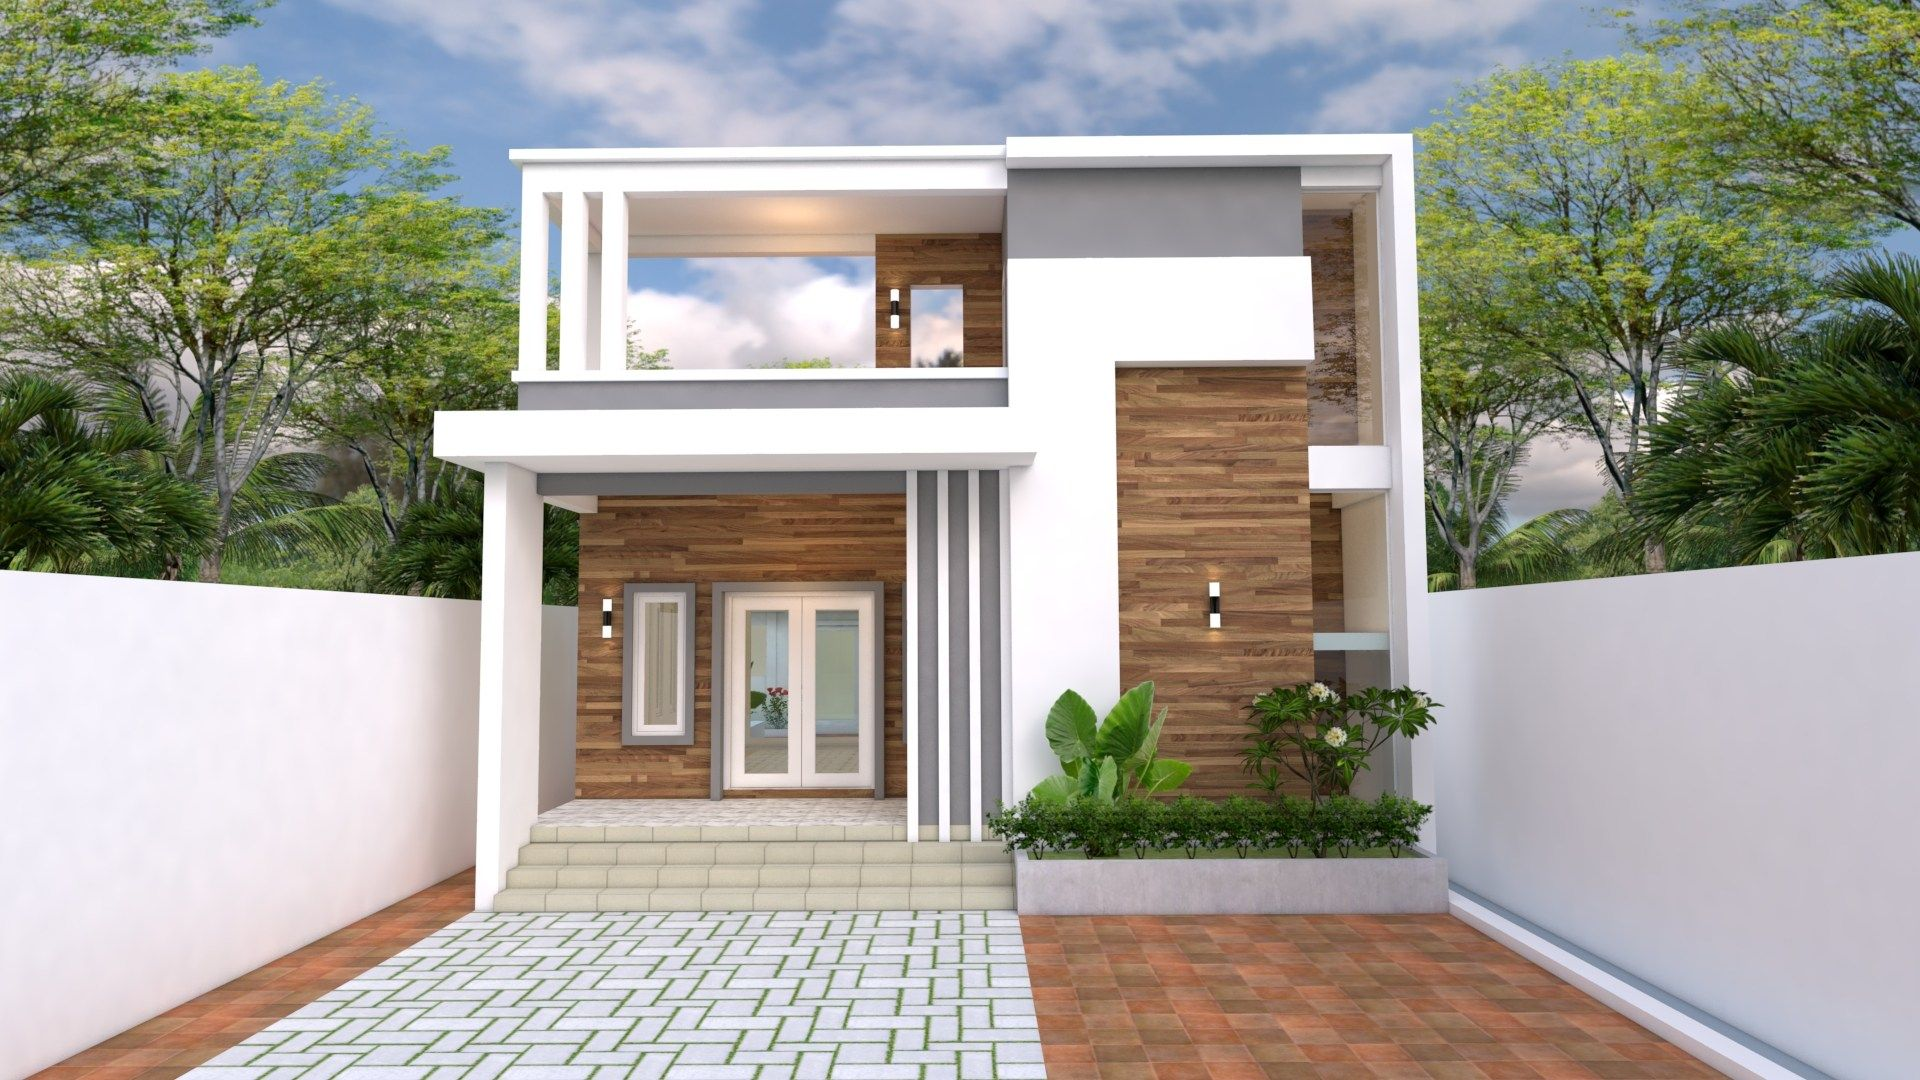 House Design 10 25 With 3 Bedrooms Bungalow House Design Modern Bungalow House House Front Design